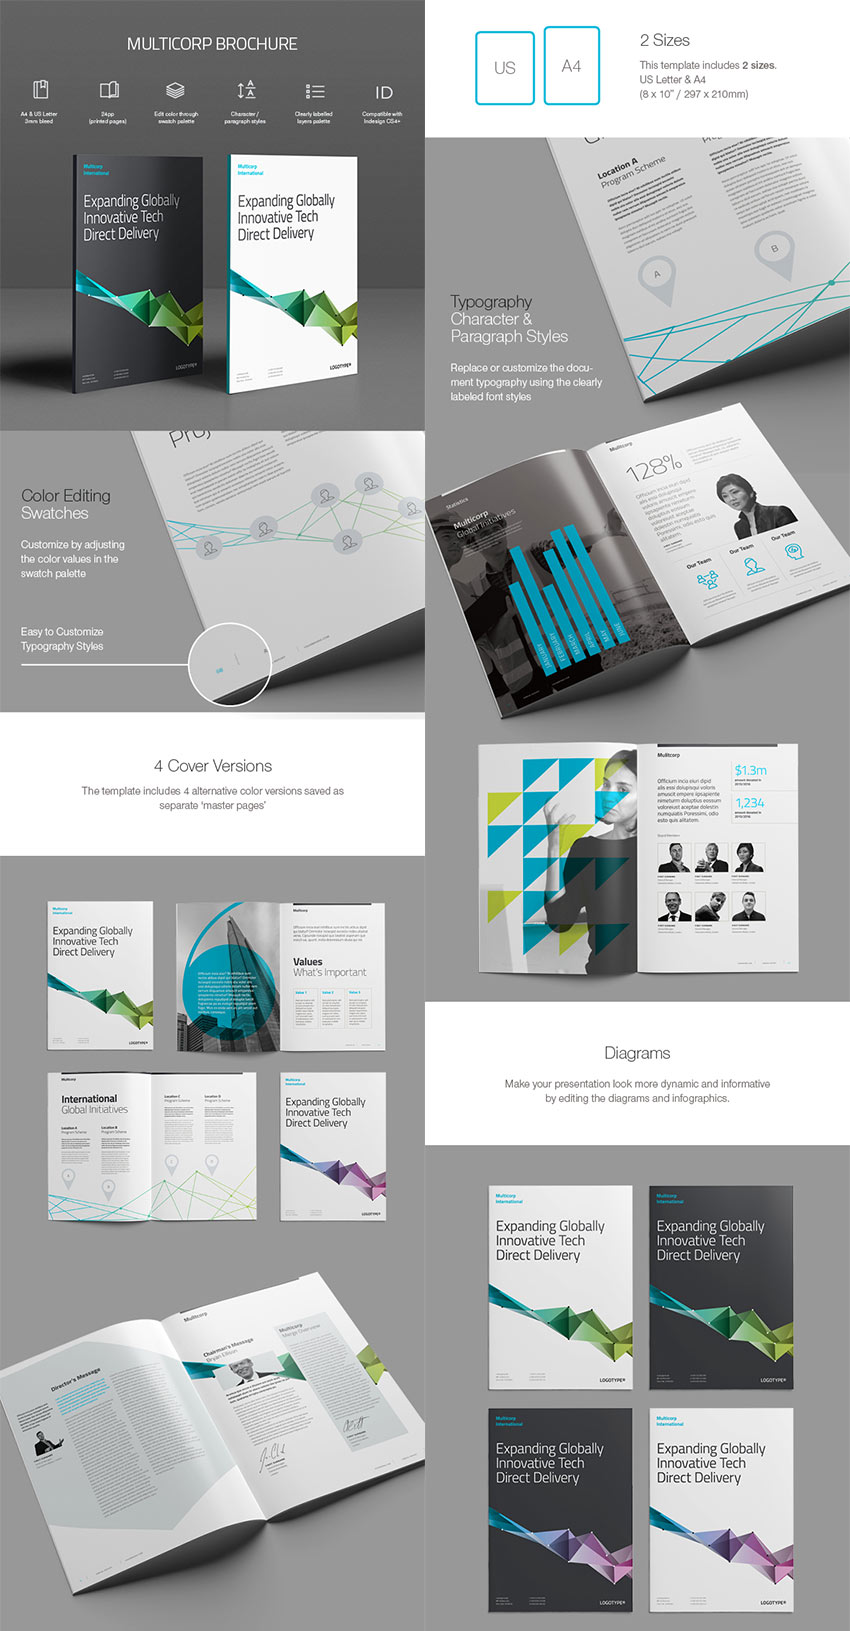 Best InDesign Brochure Templates For Creative Business Marketing - Brochure templates indesign